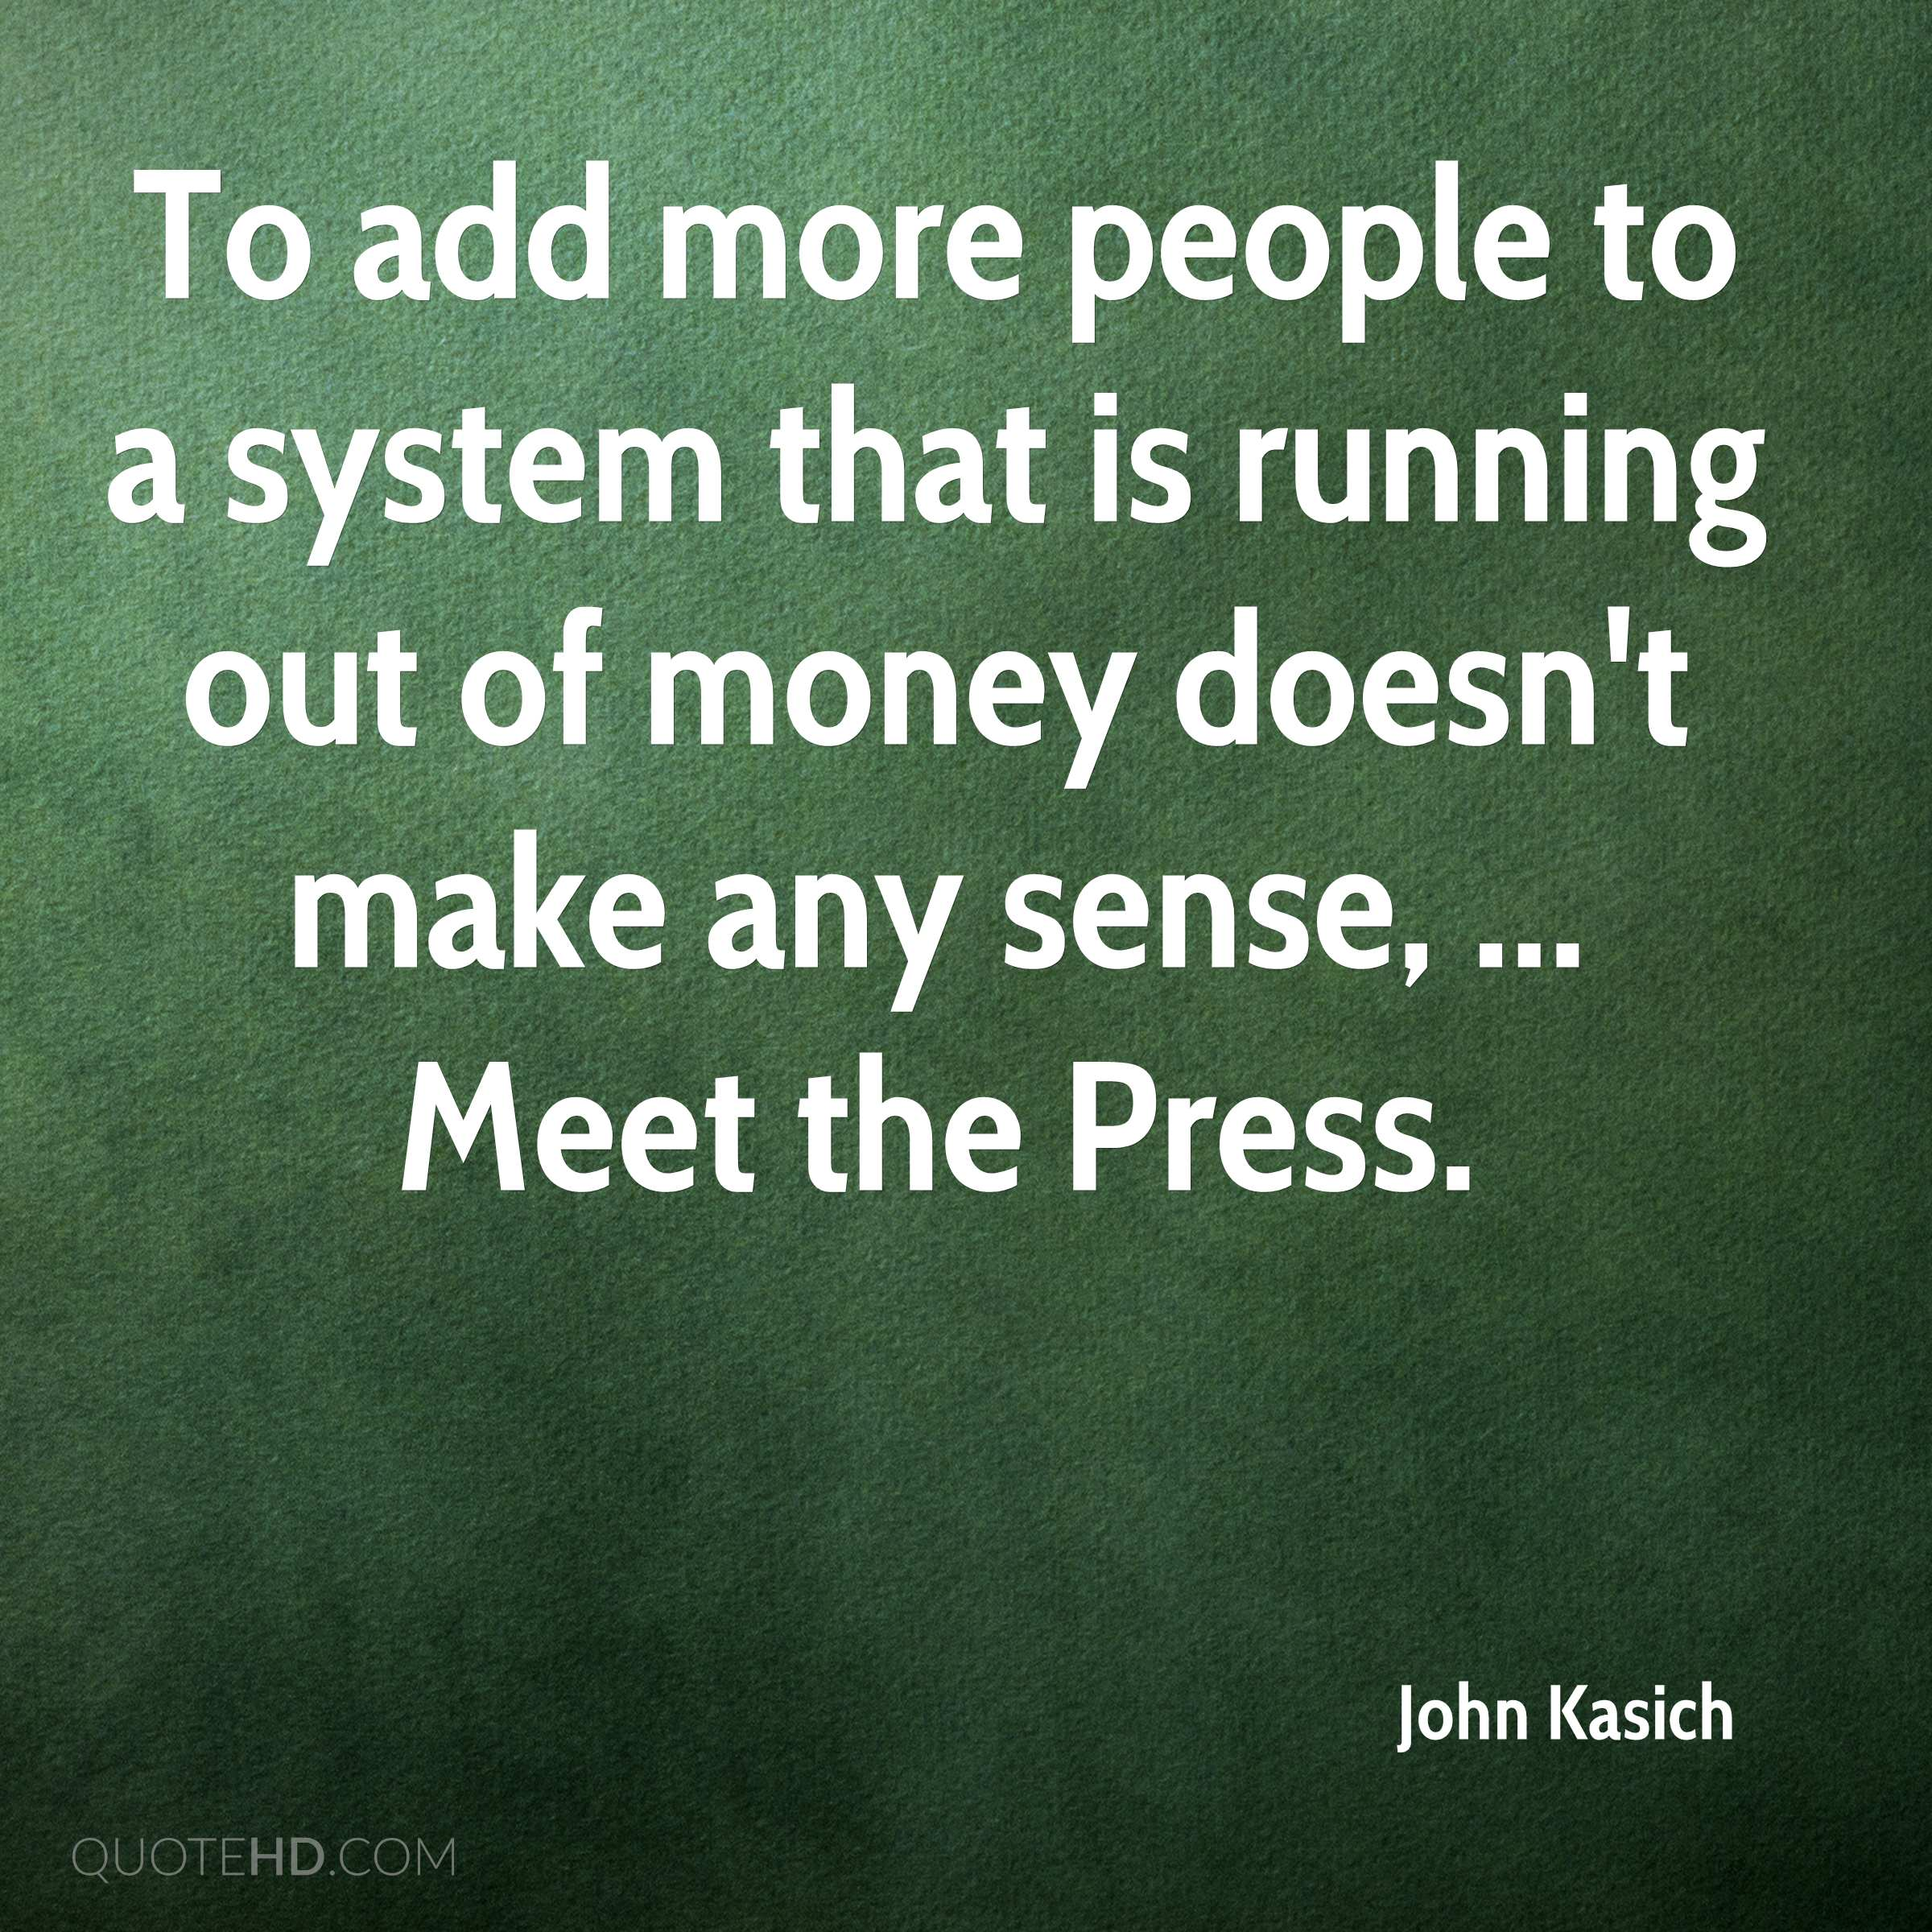 To add more people to a system that is running out of money doesn't make any sense, ... Meet the Press.